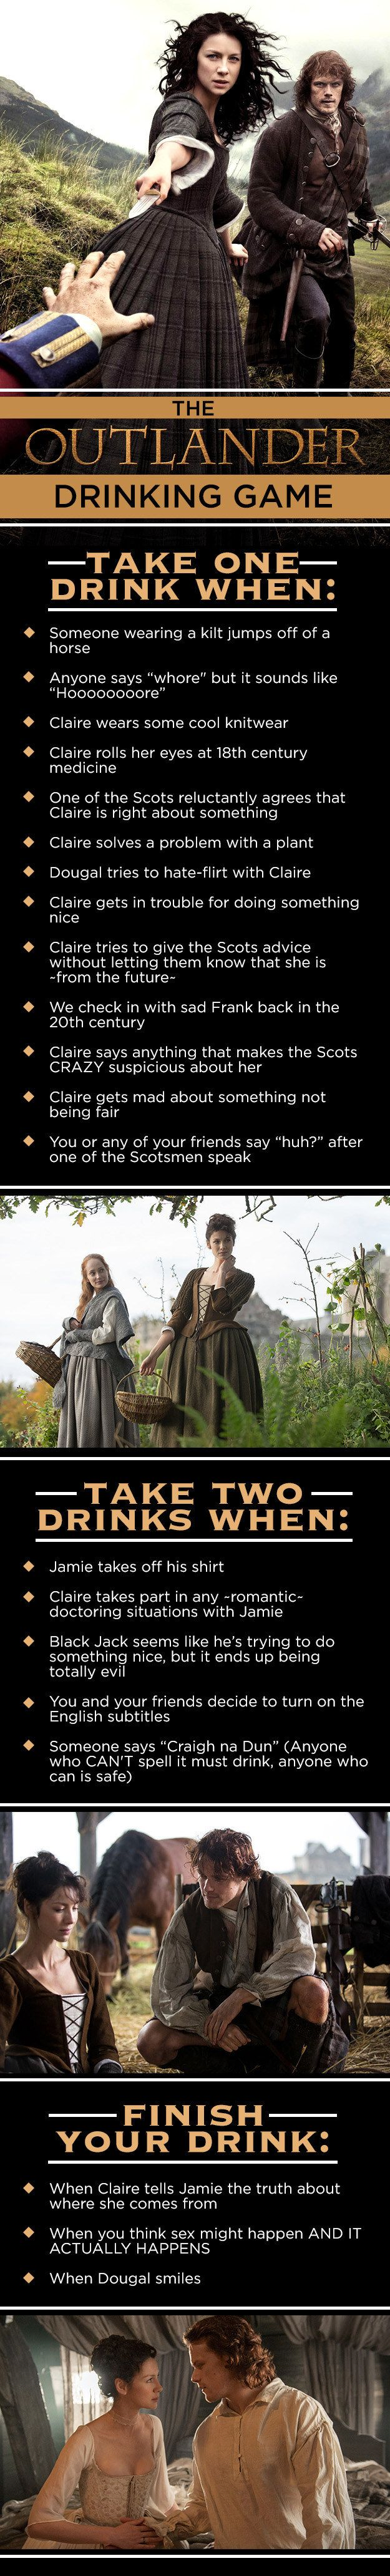 """The """"Outlander"""" Drinking Game That You Want And Need#.oigXZA5G9#.oigXZA5G9"""